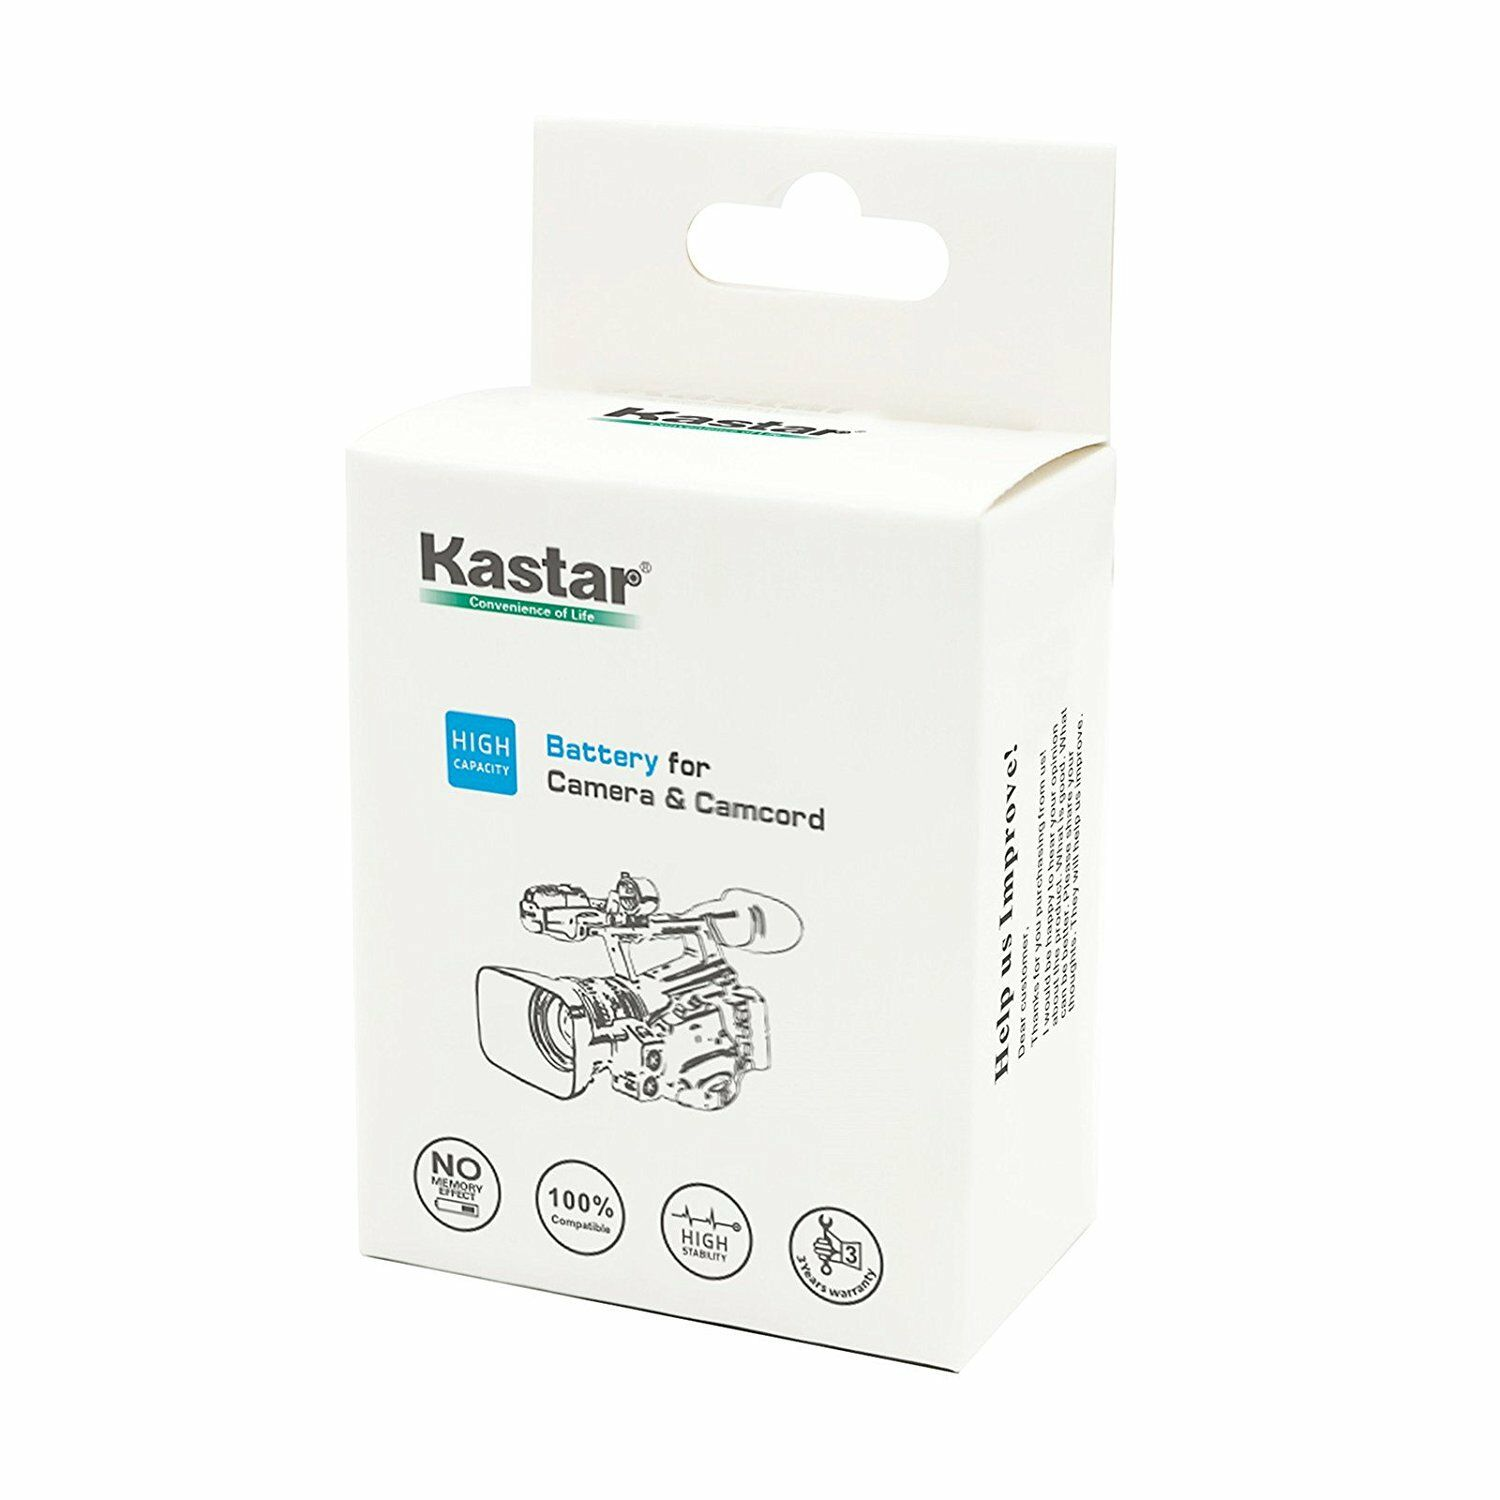 Kastar F980 Battery LCD Charger For Sony NP-F960 MVC-FDR1 MVC-FDR3 PBD-D50 - $7.99